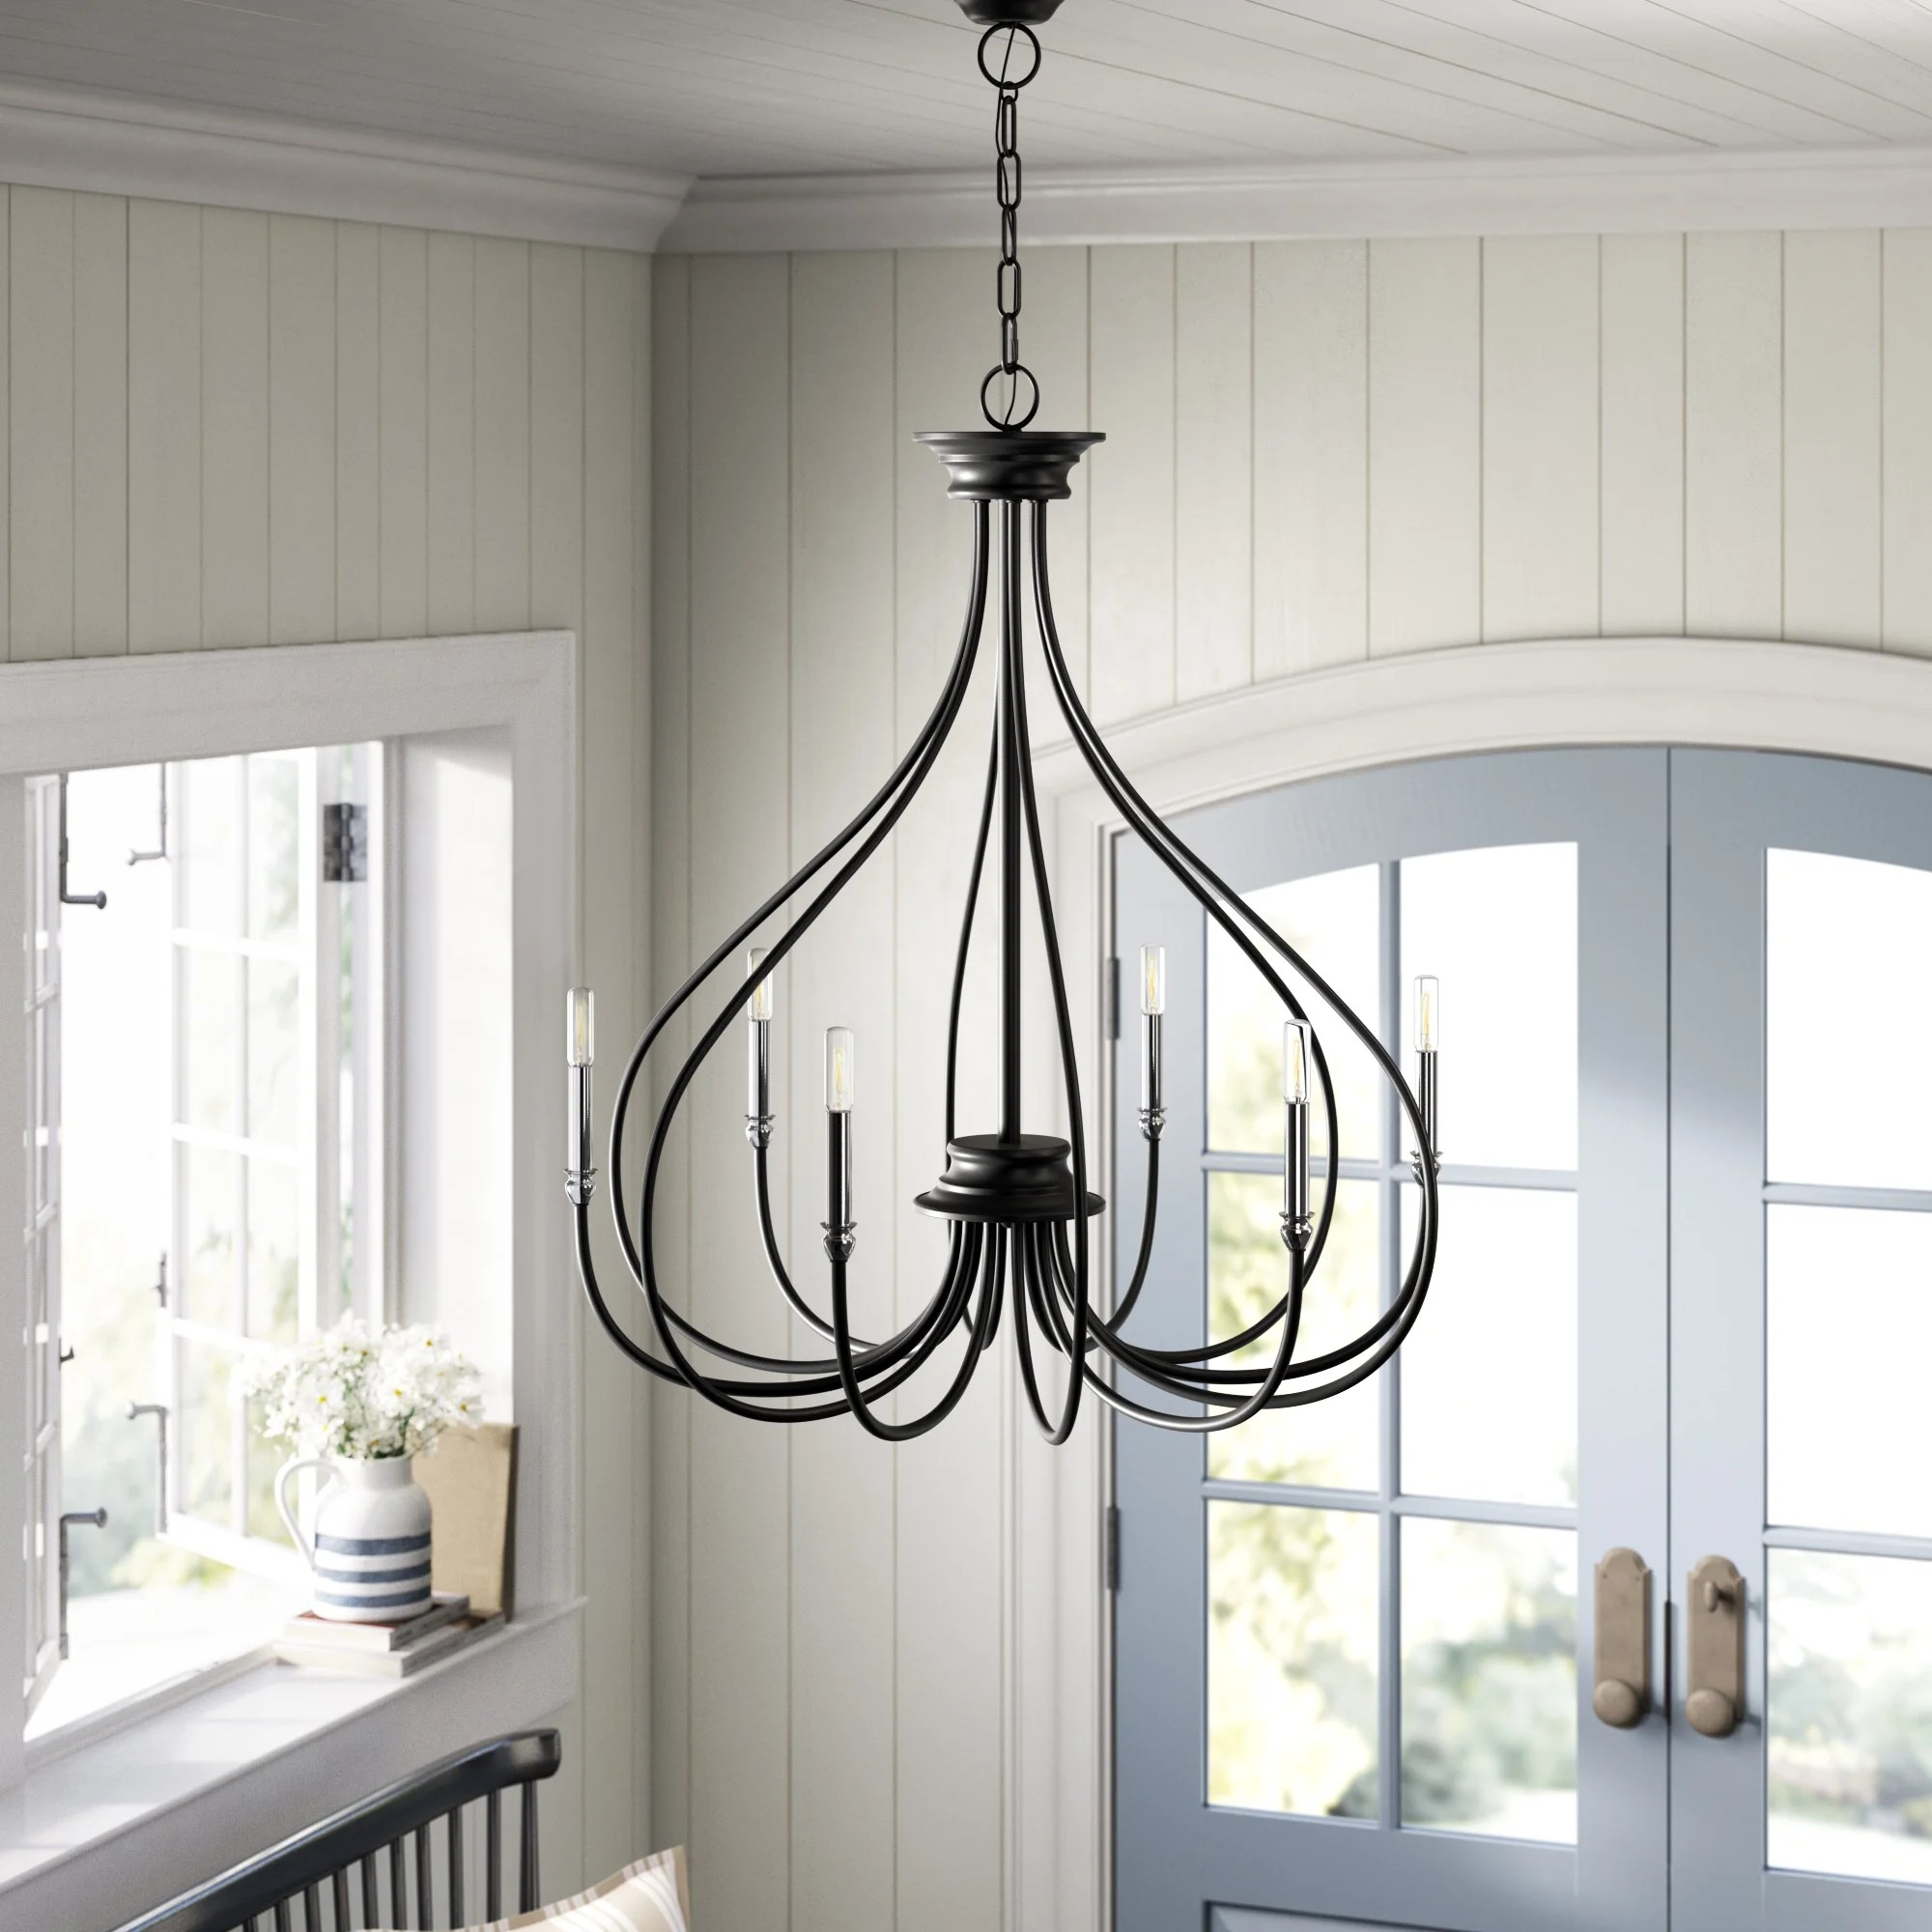 Wayfair Geometric Chandeliers You Ll Love In 2021